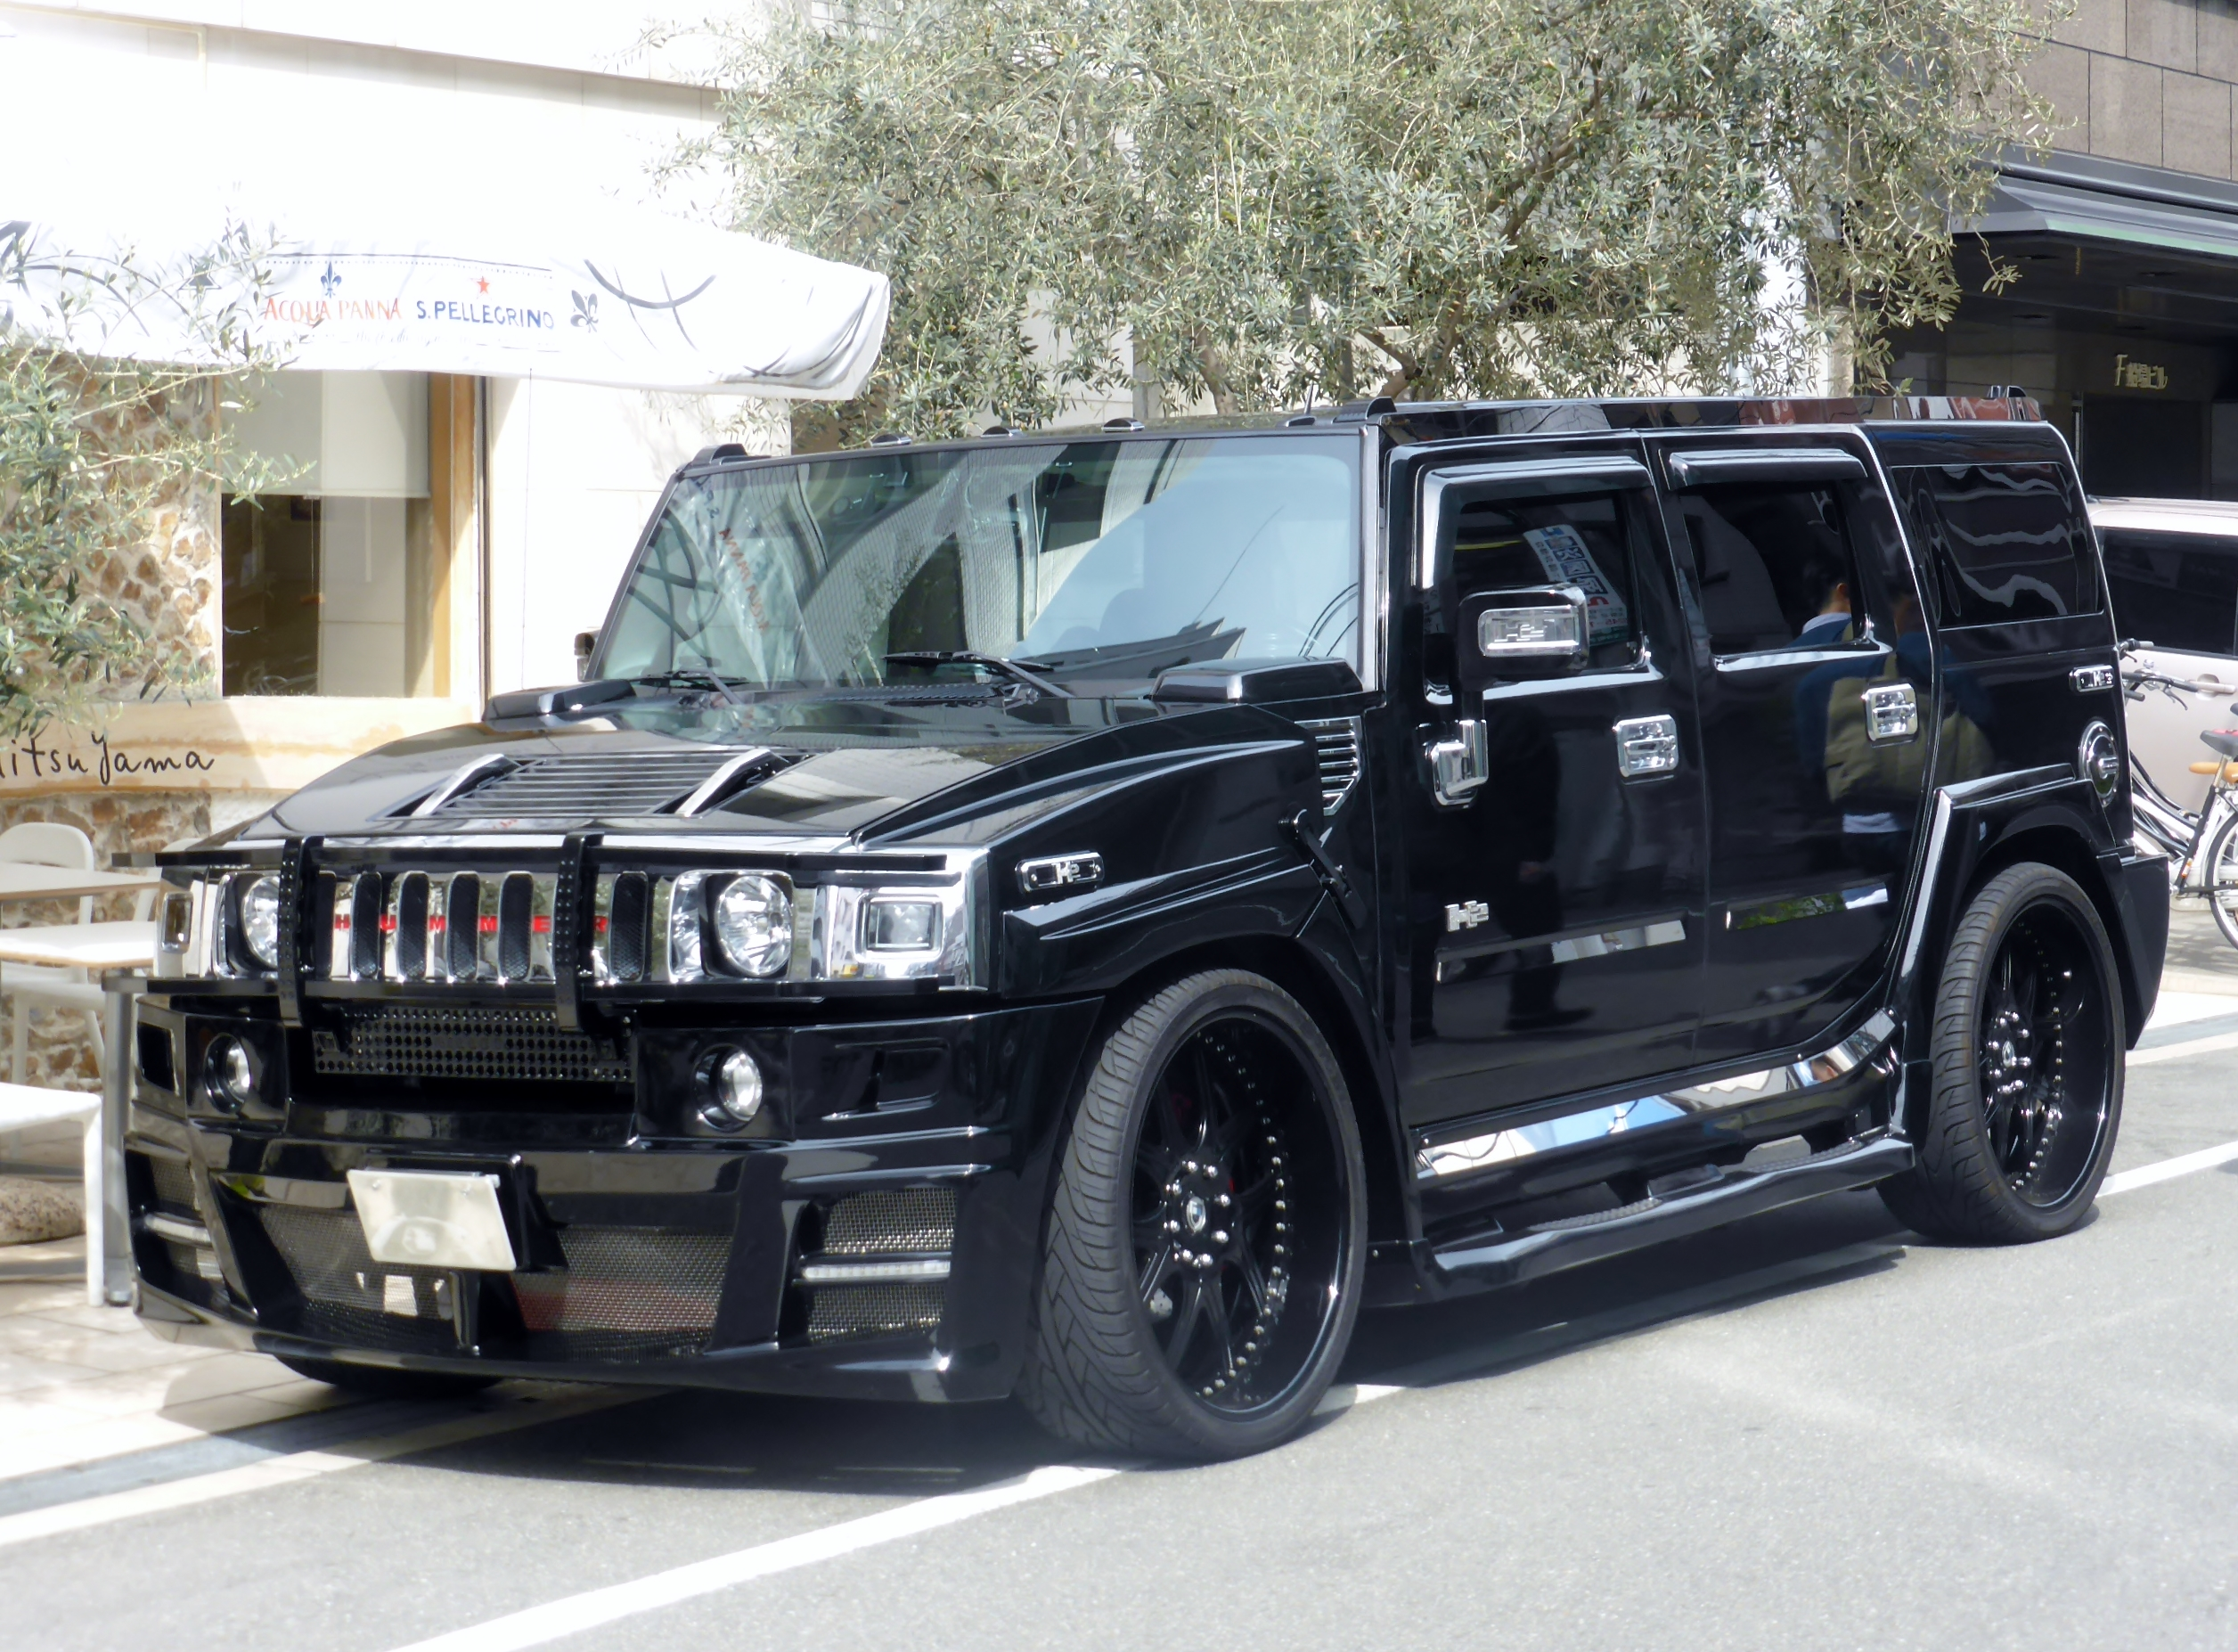 File The frontview of HUMMER H2 JPG Wikimedia mons